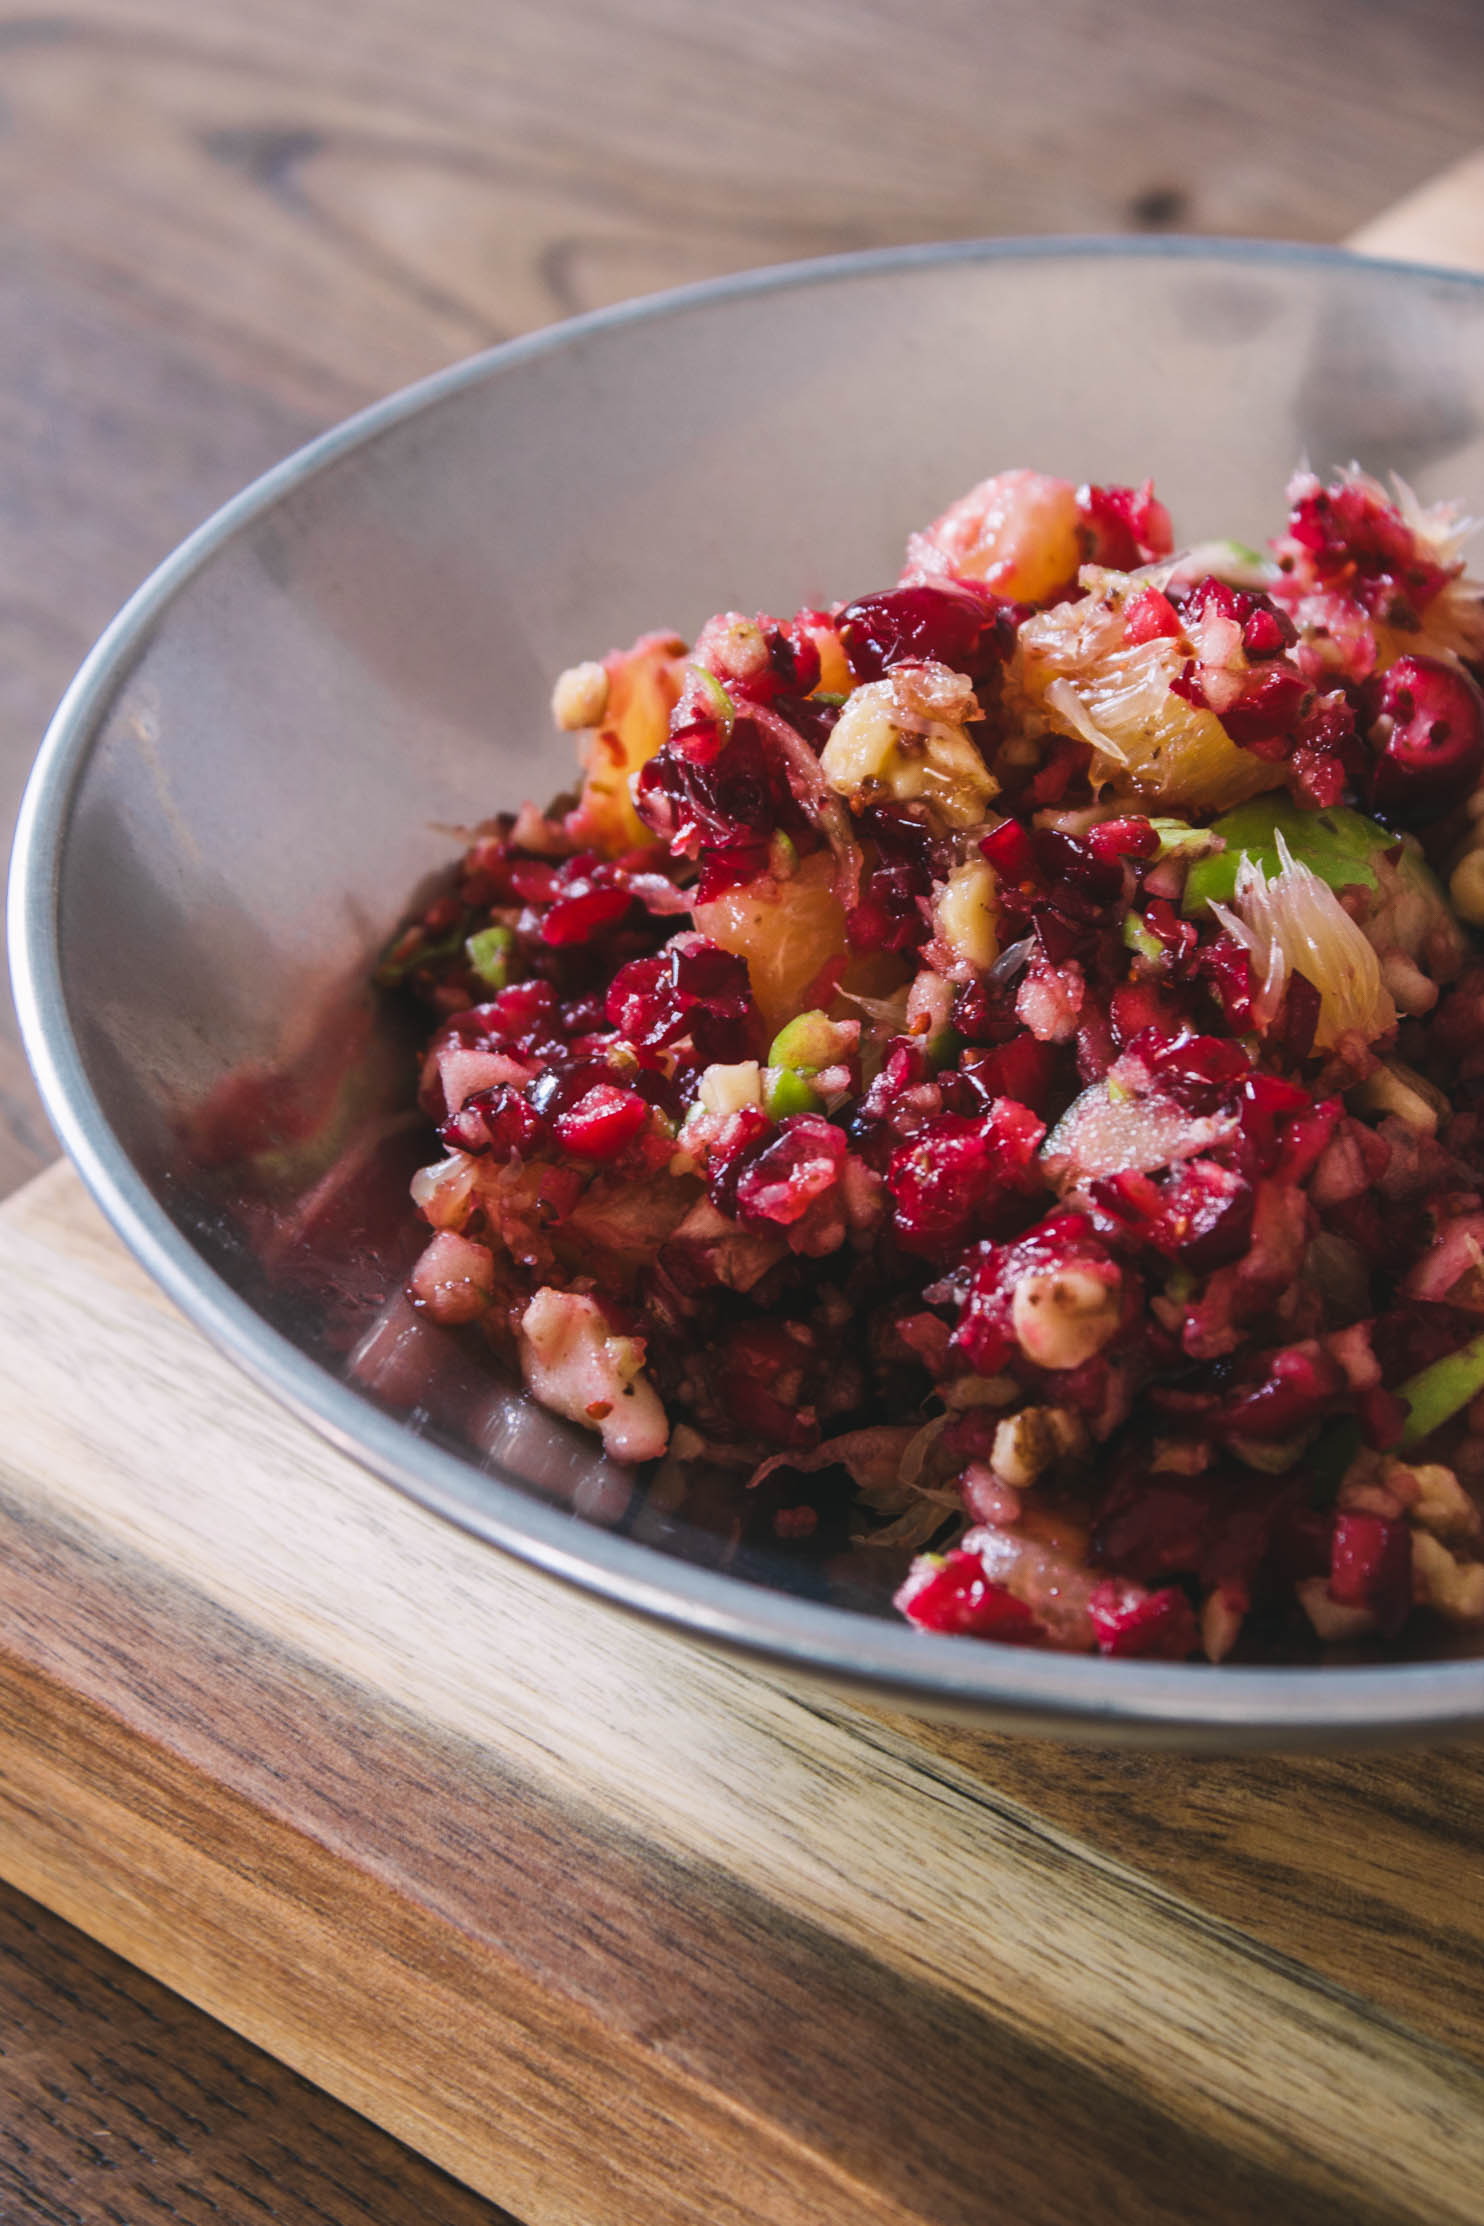 1-Bowl Raw Cranberry Fruit Salad #relish #thanksgiving #christmas #fruit salad